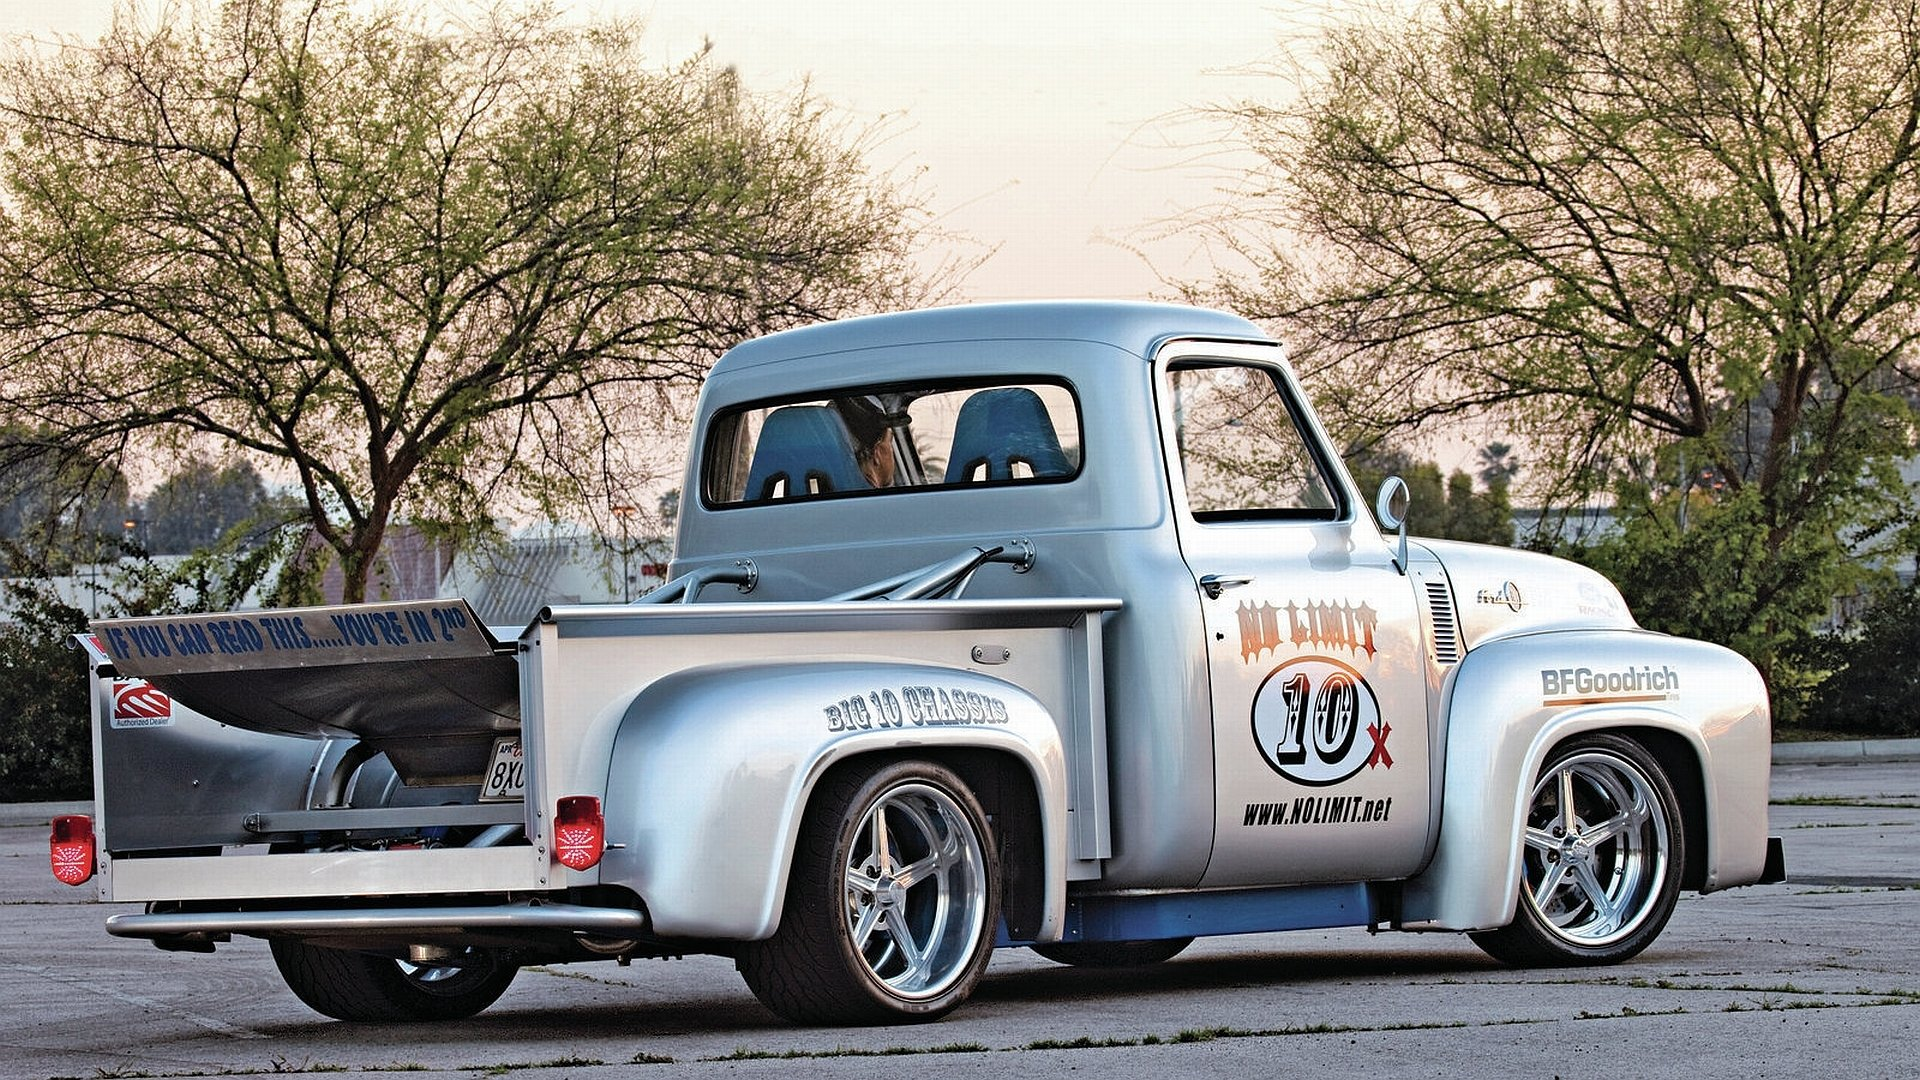 Ford F 100 Wallpapers and Background Images   stmednet 1920x1080